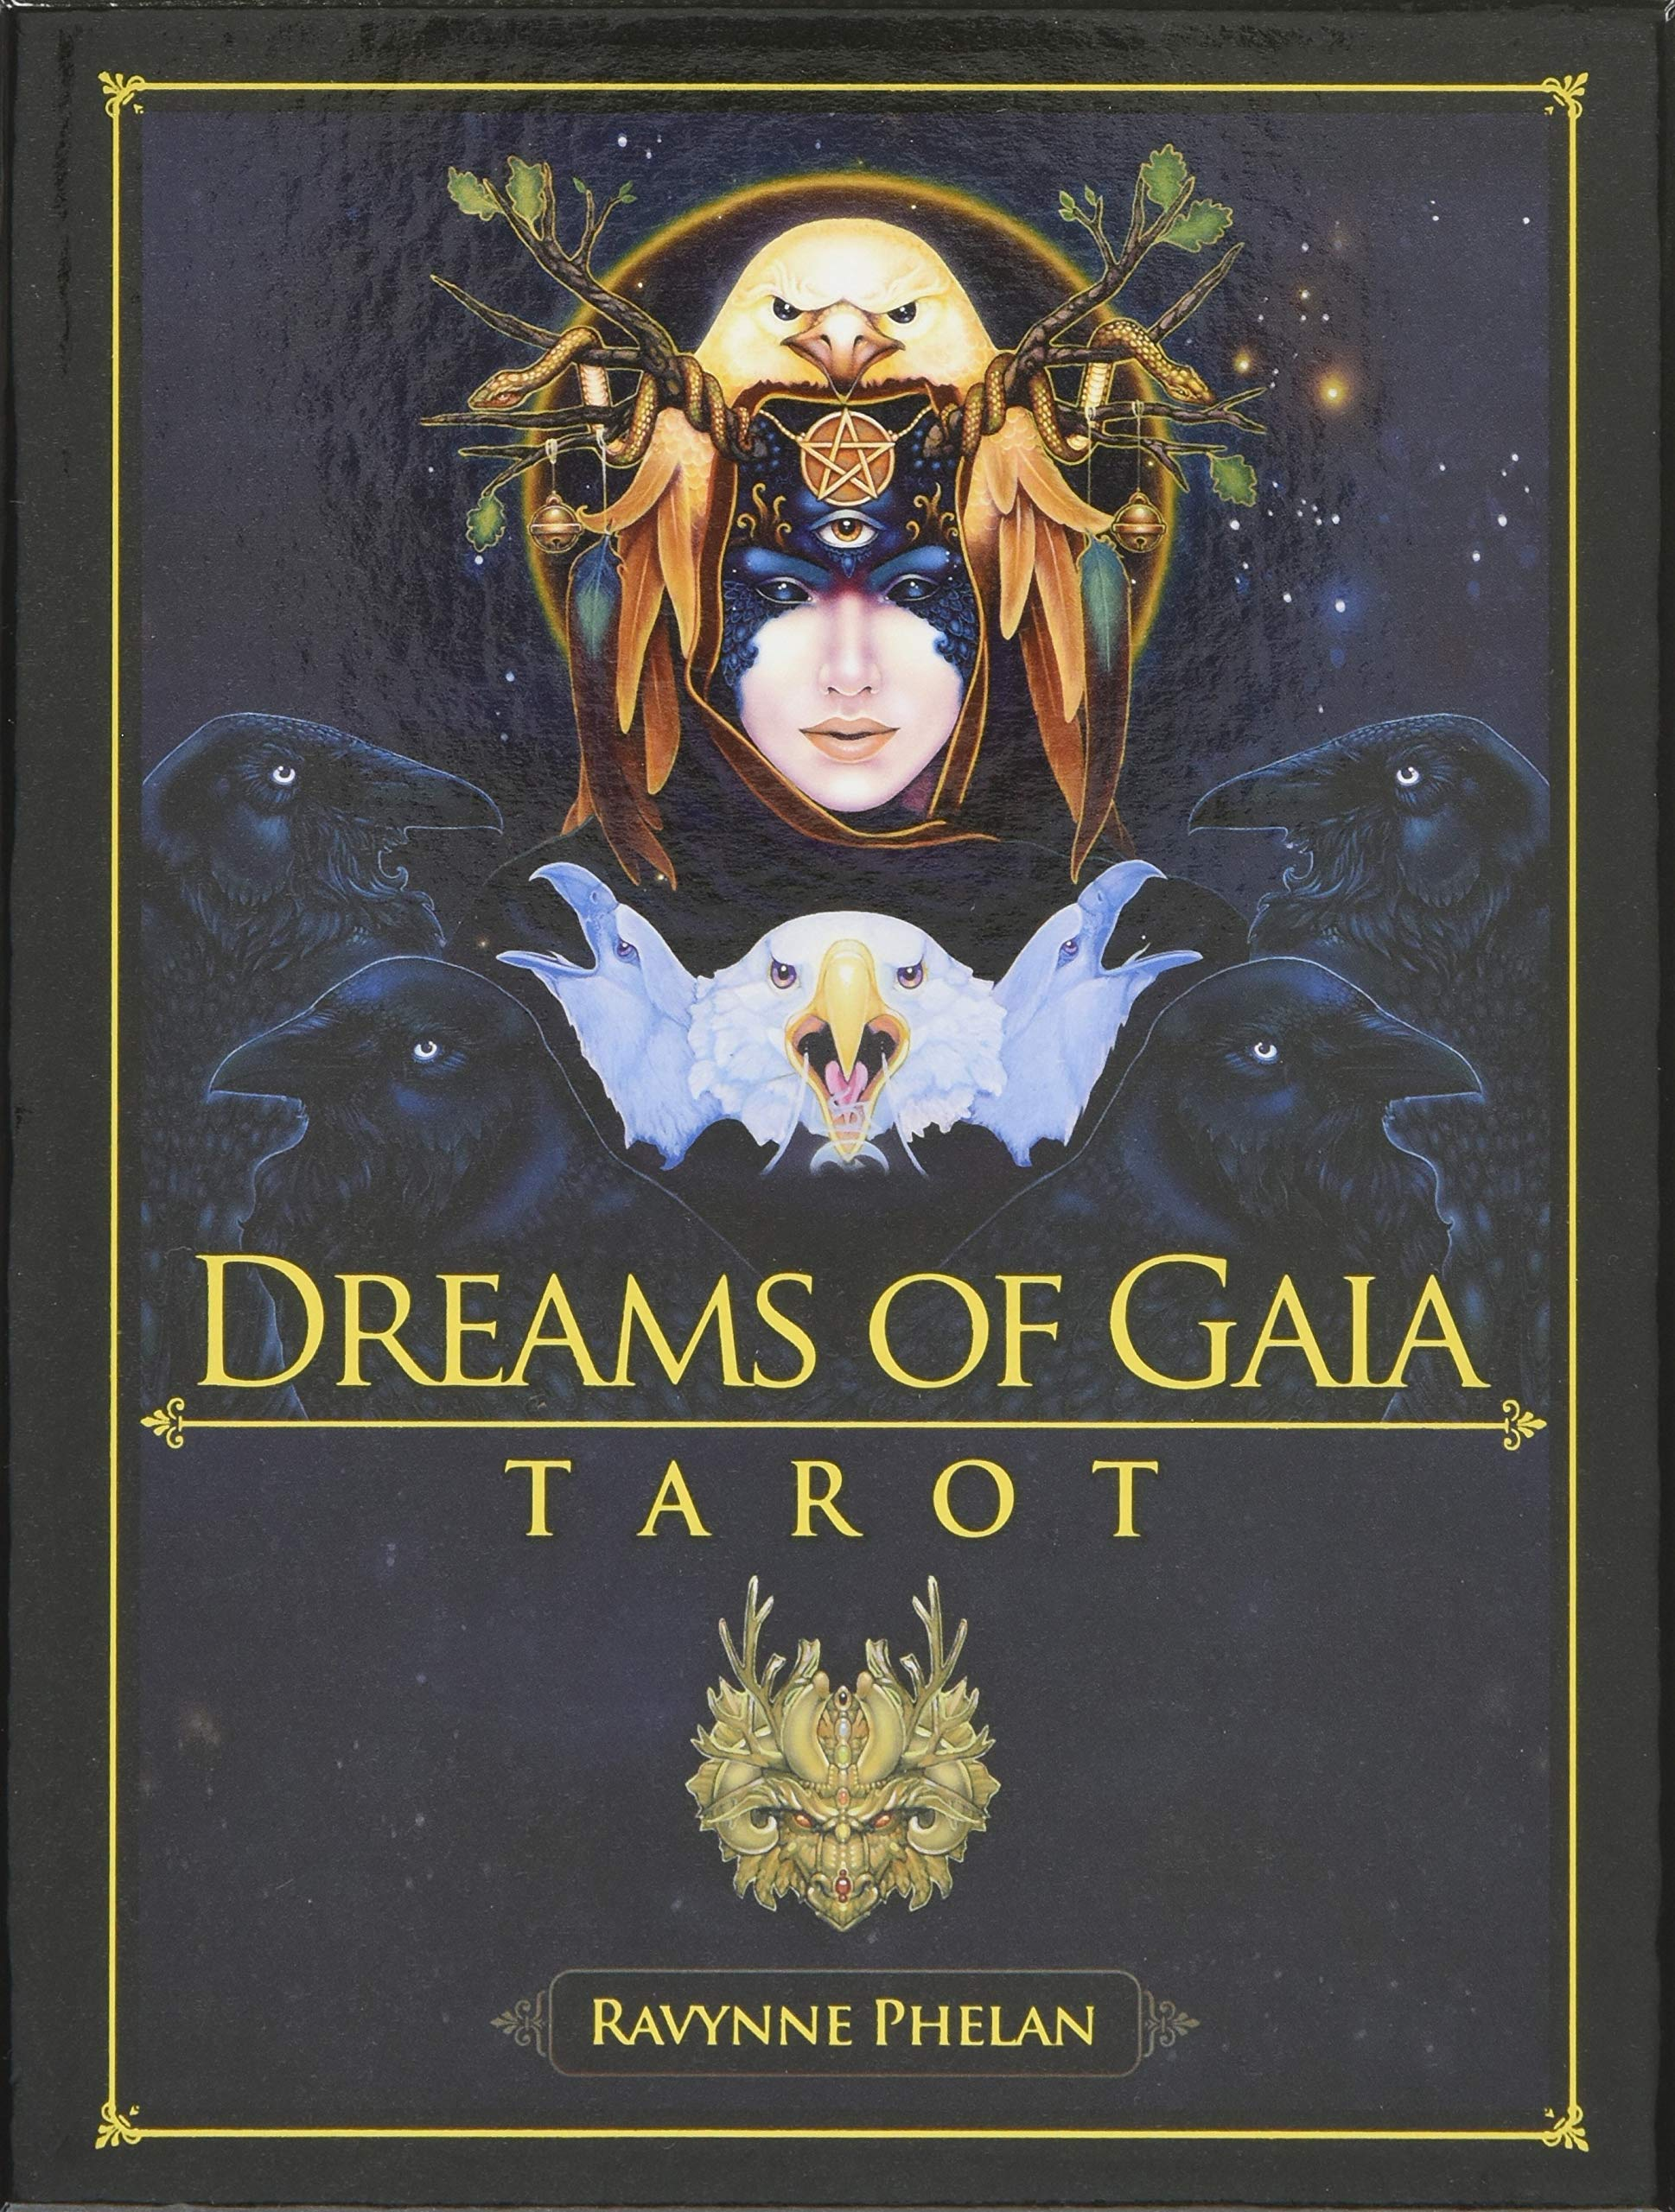 Dreams of Gaia Tarot; Ravynne Phelan